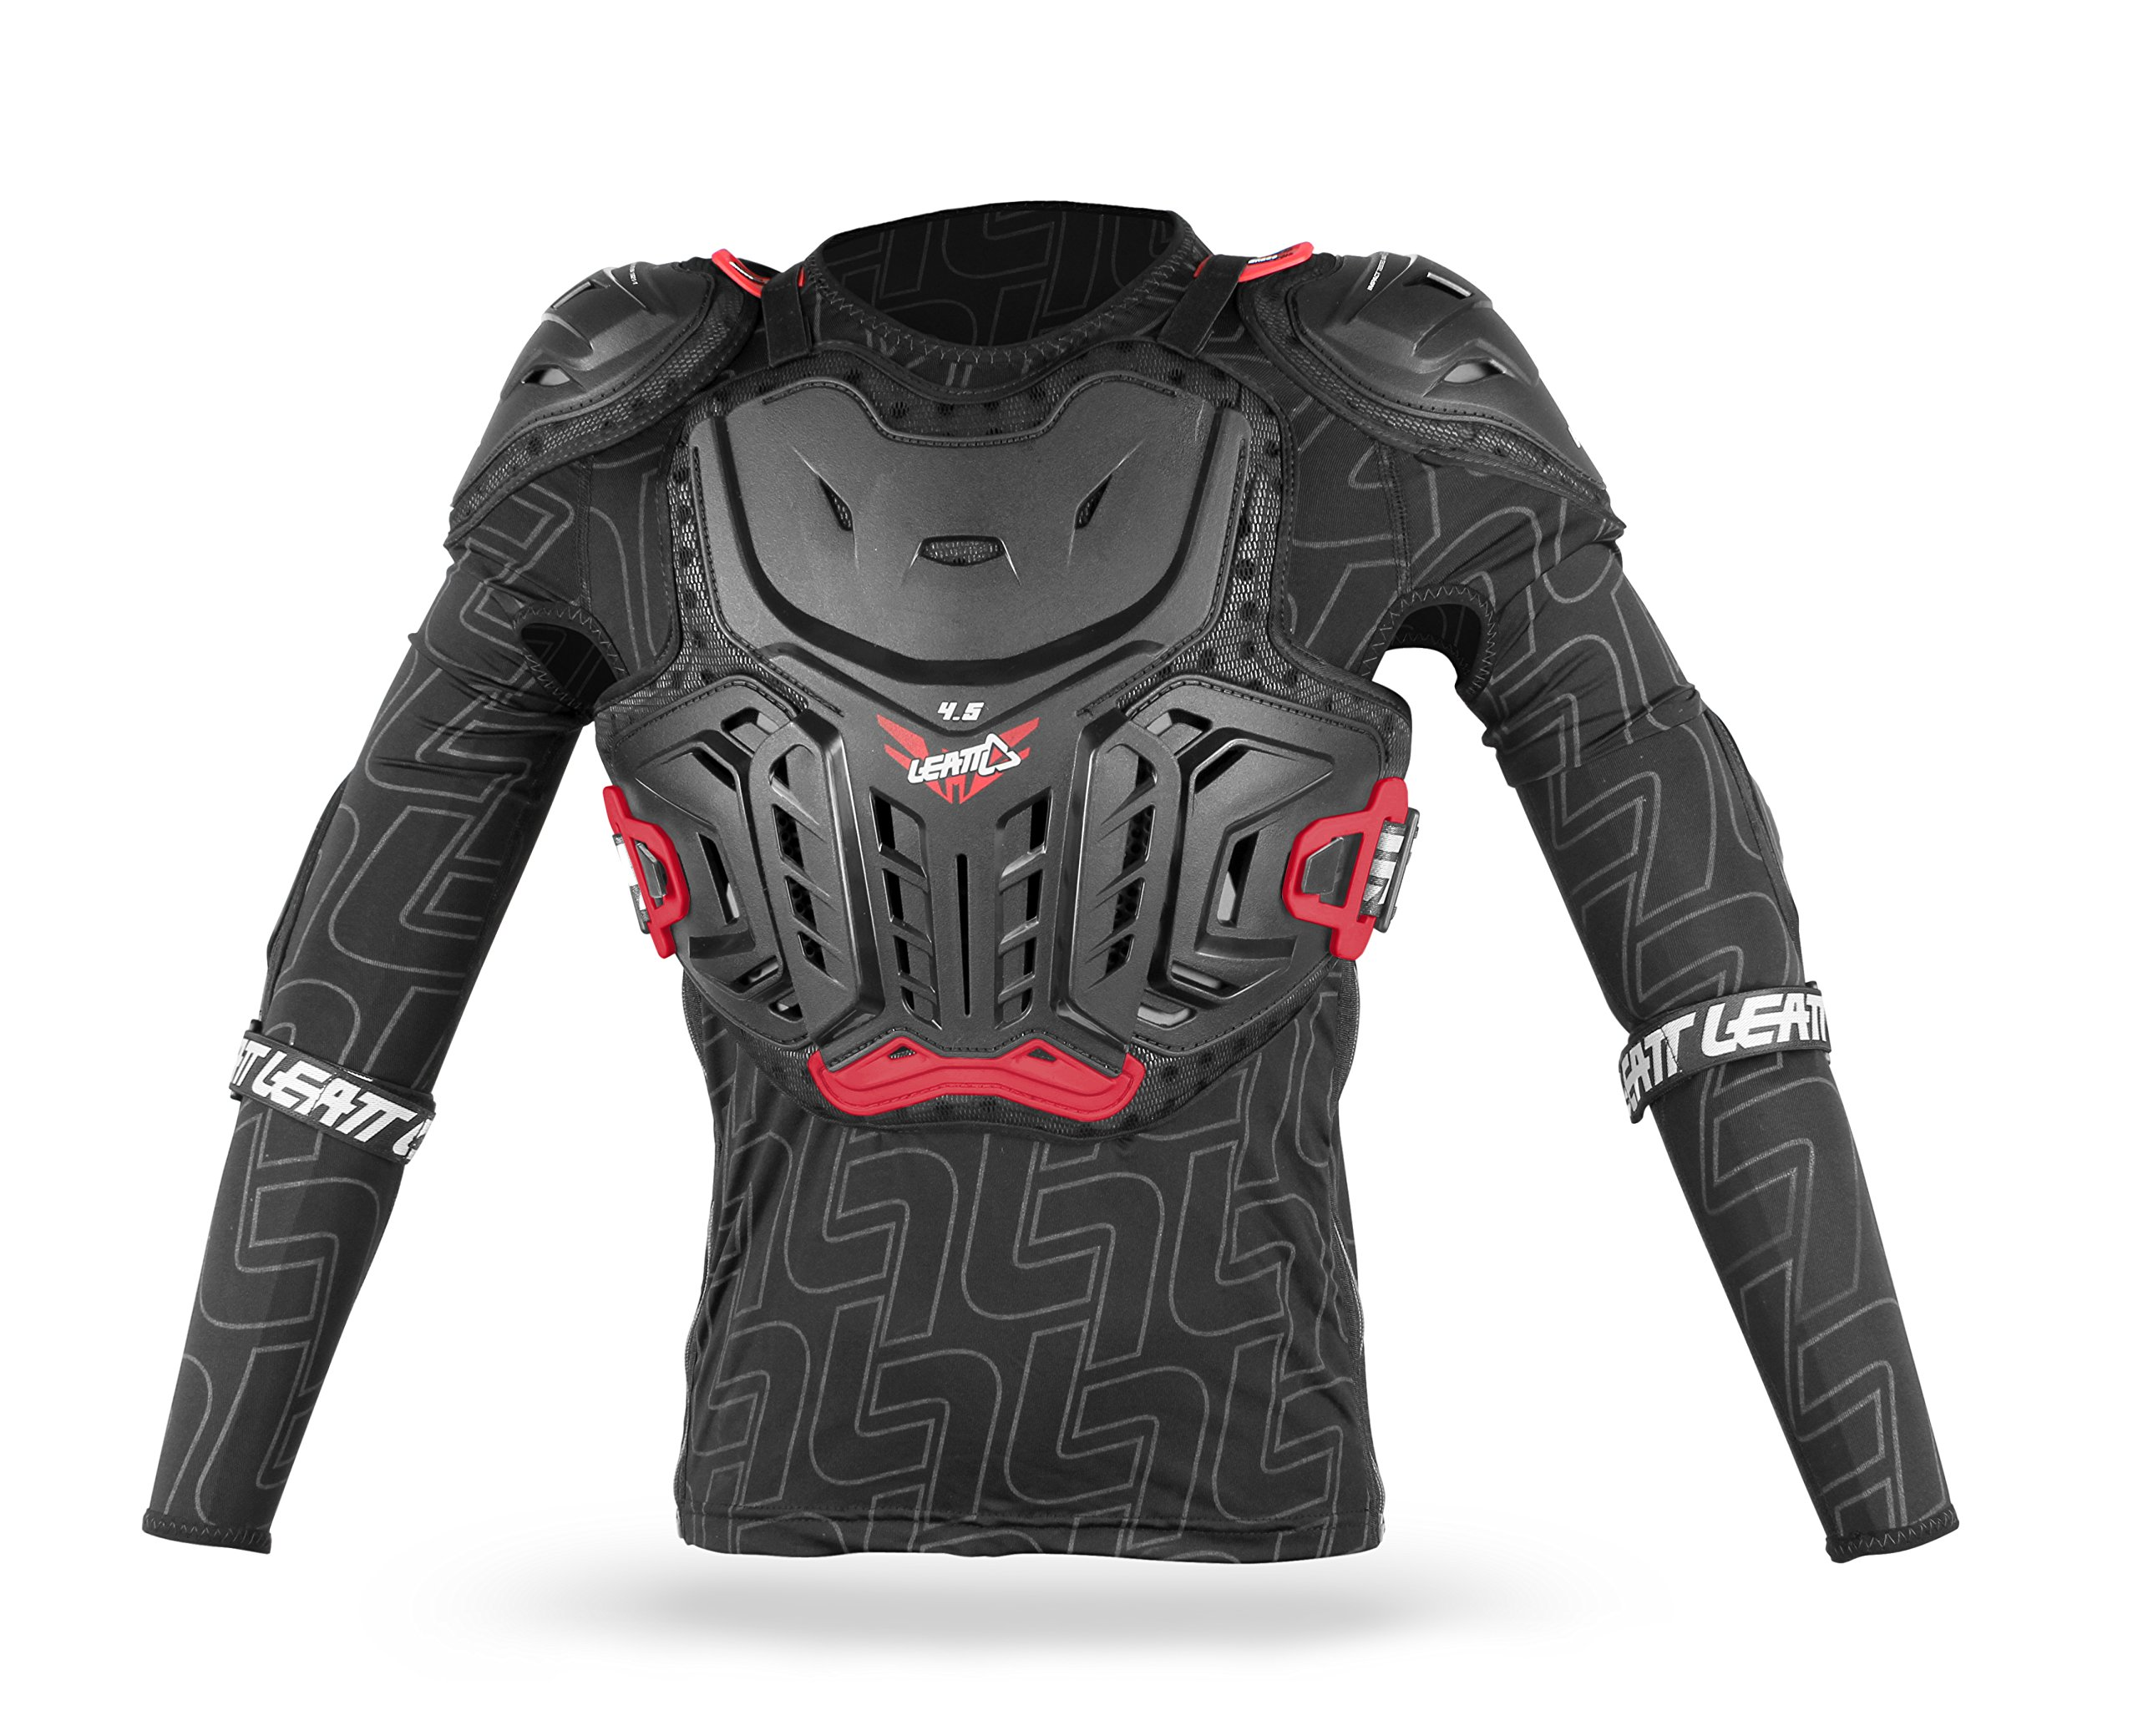 Leatt 4.5 Junior Body Protector (Black, Large-X-Large/Size 147-159cm)